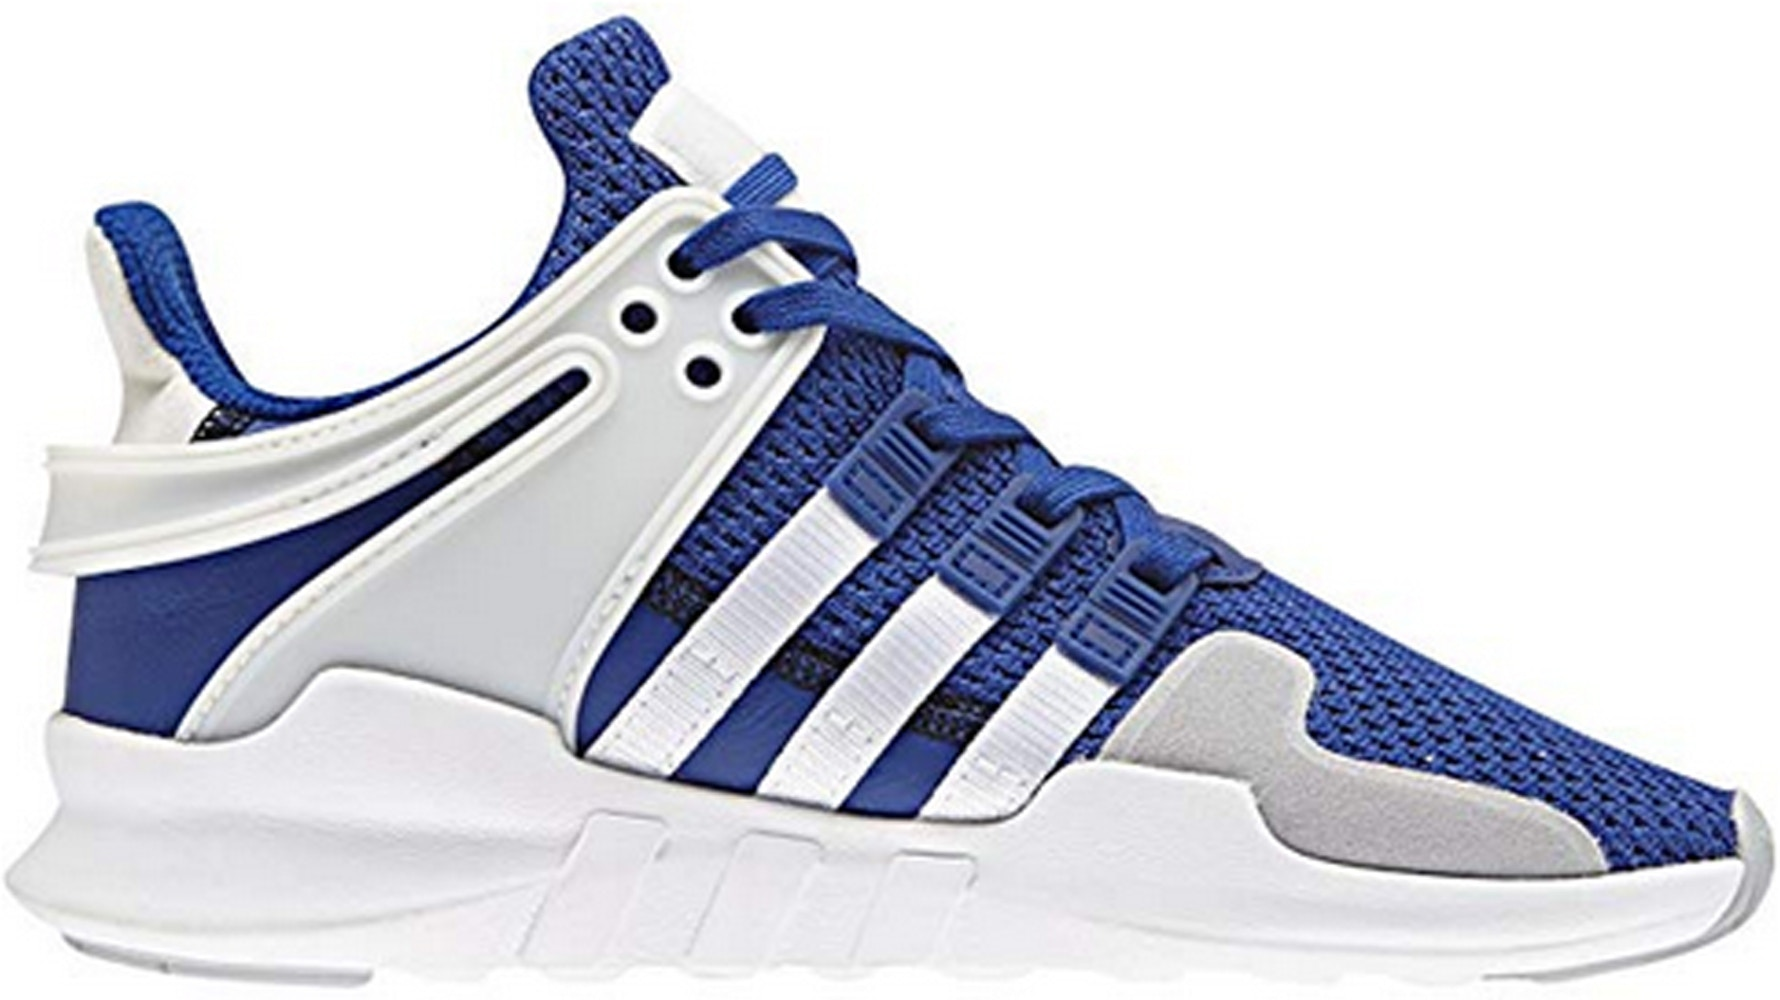 adidas EQT Support Adv Blue White (Youth) - CM8151